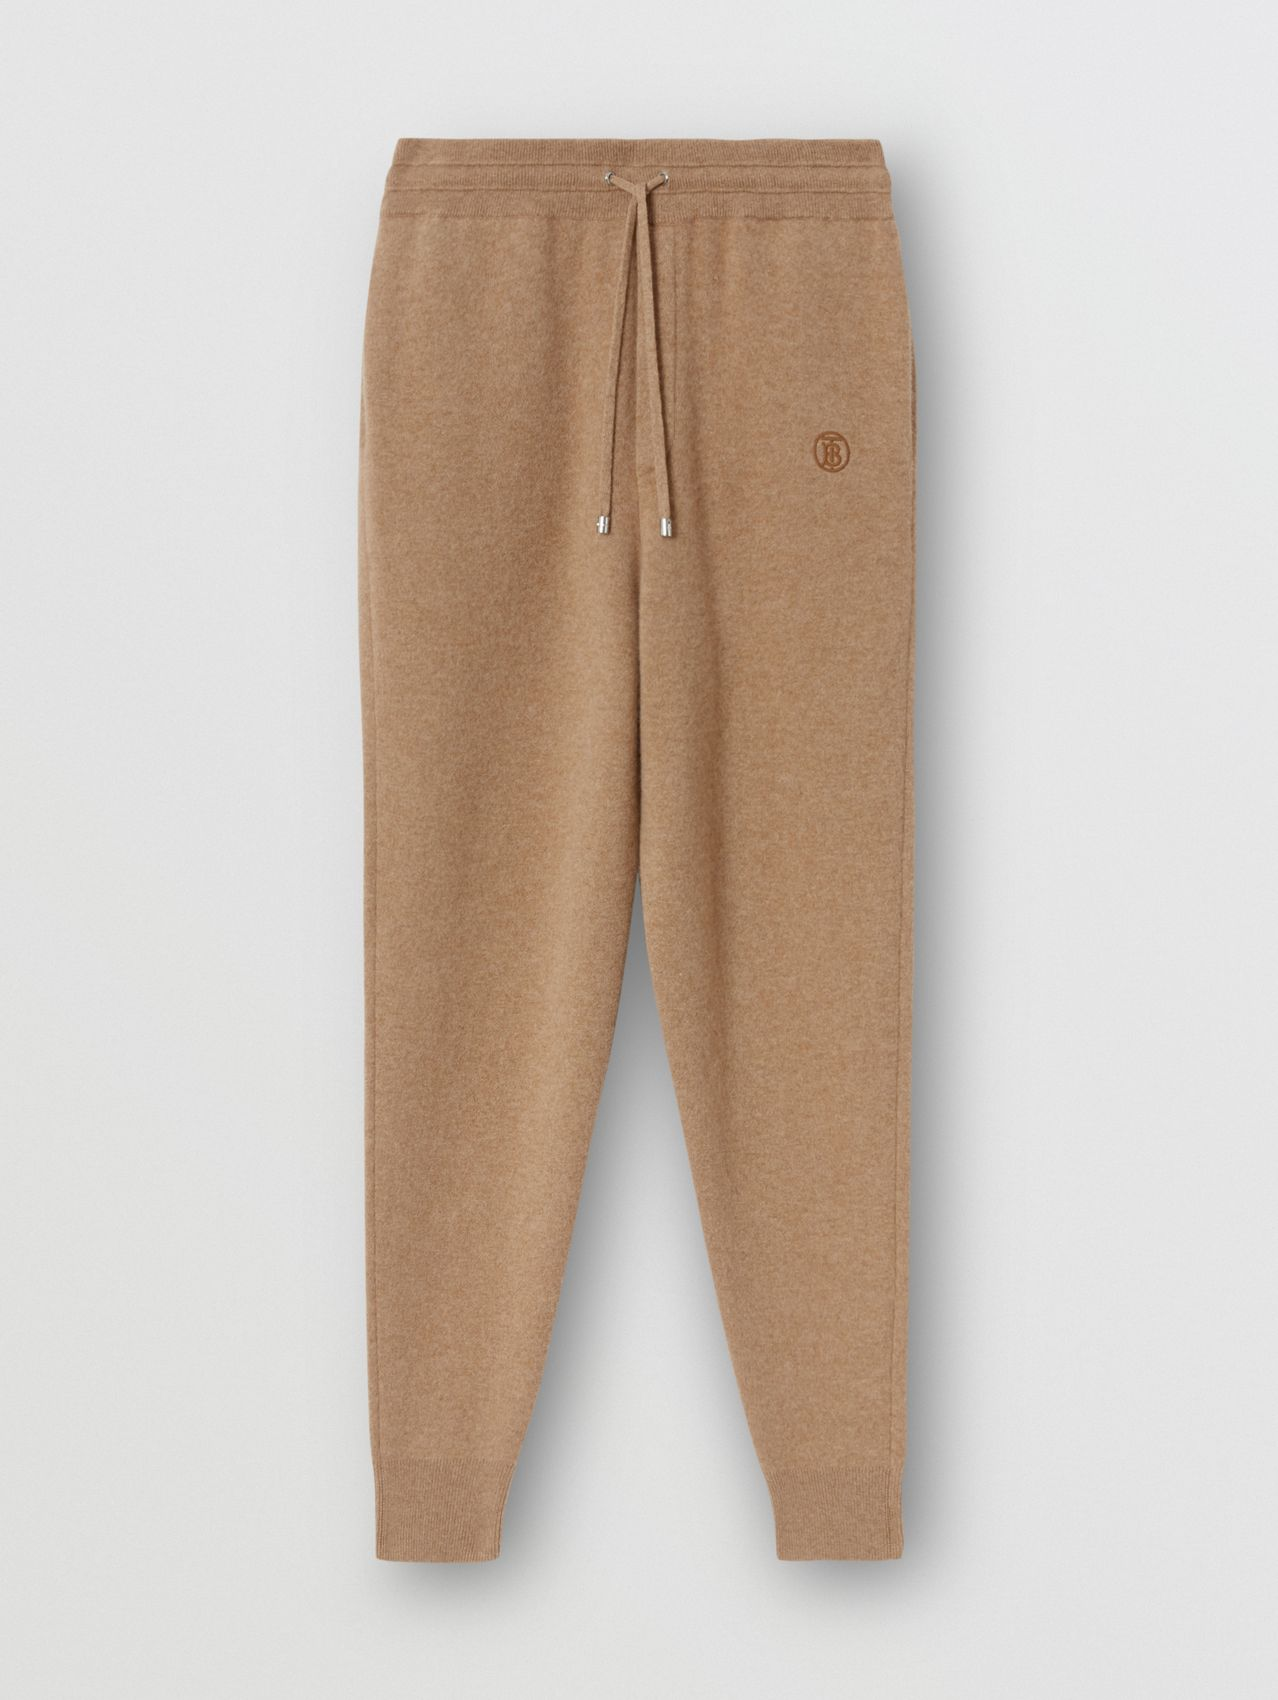 Monogram Motif Cashmere Blend Jogging Pants in Pale Coffee